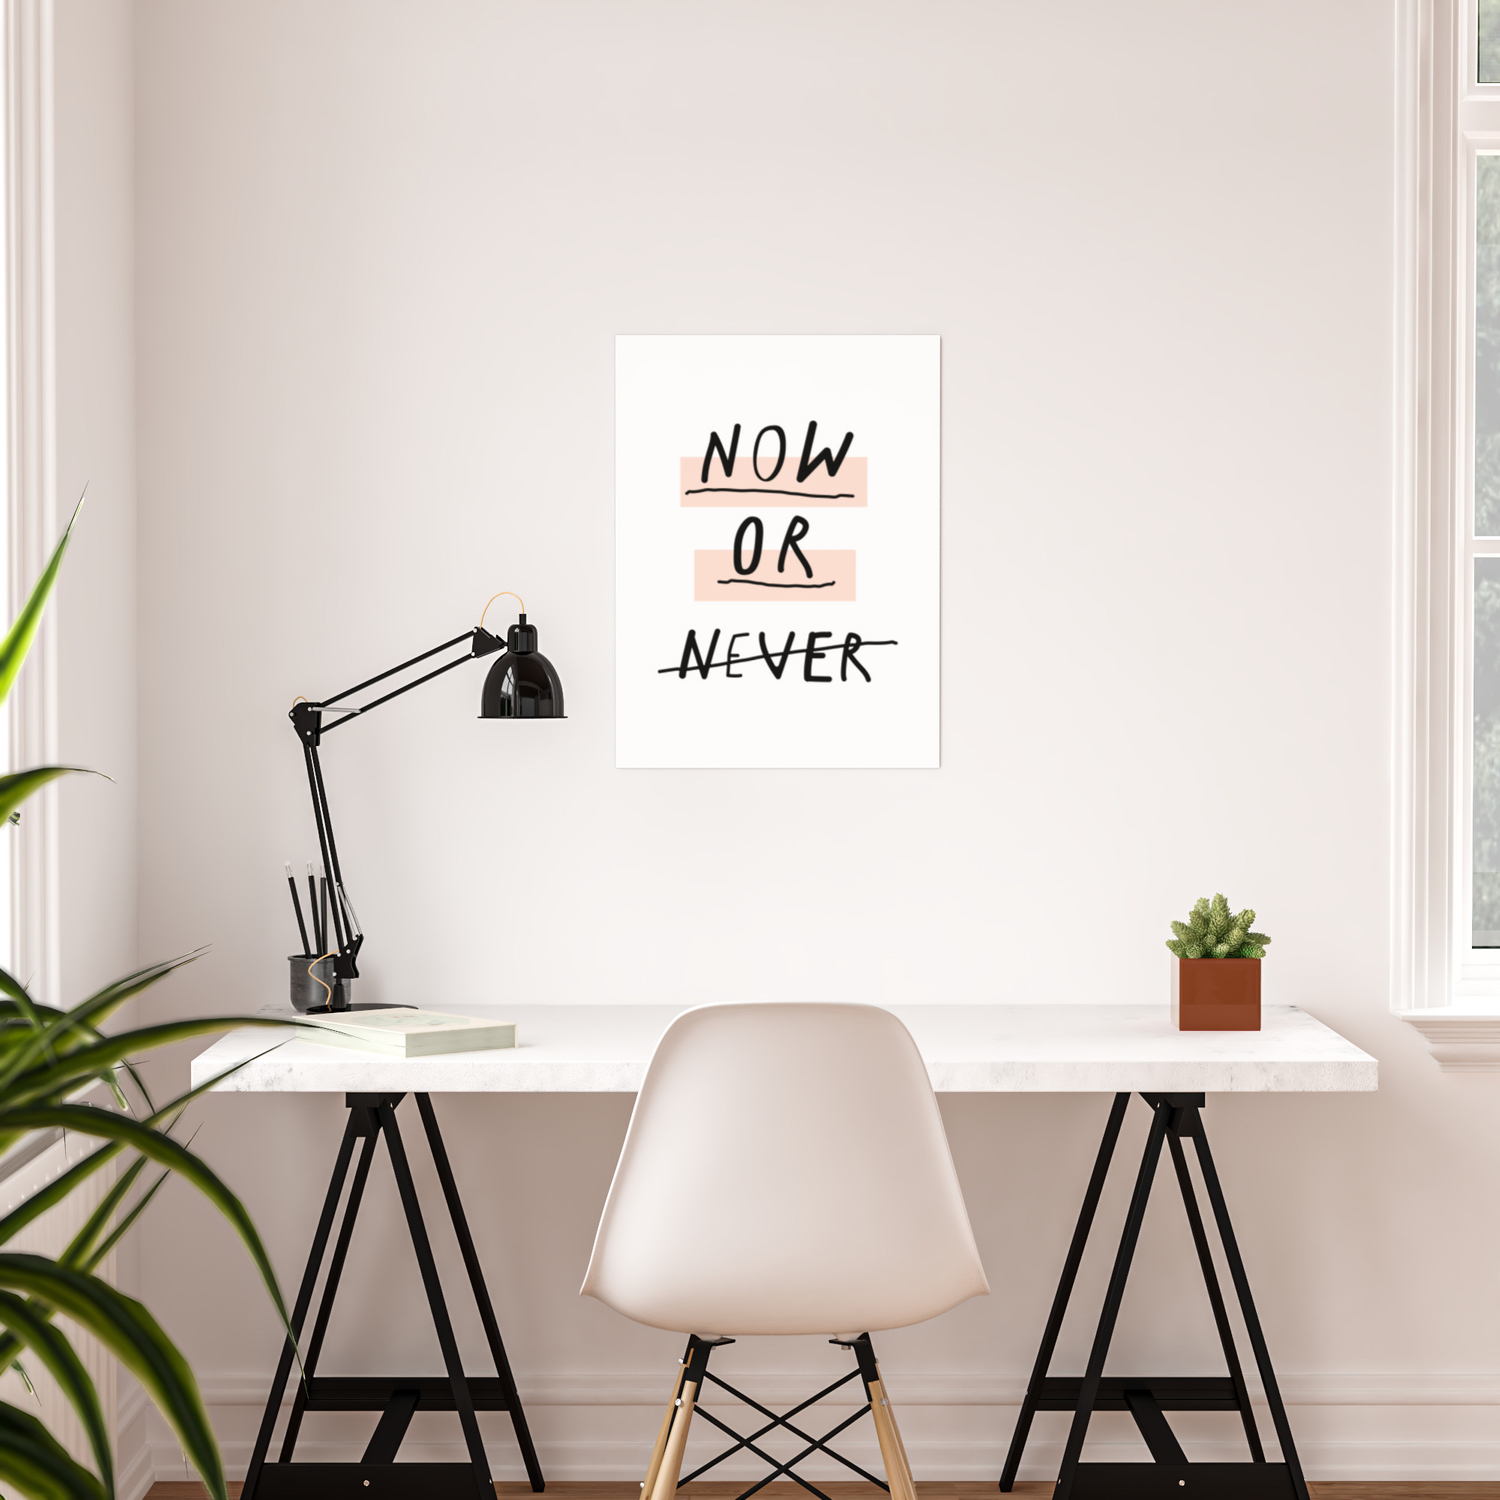 Now Or Never Typography Poster Modern Minimalist Design Home Wall Art Bedroom Decor Poster By Themotivatedtype